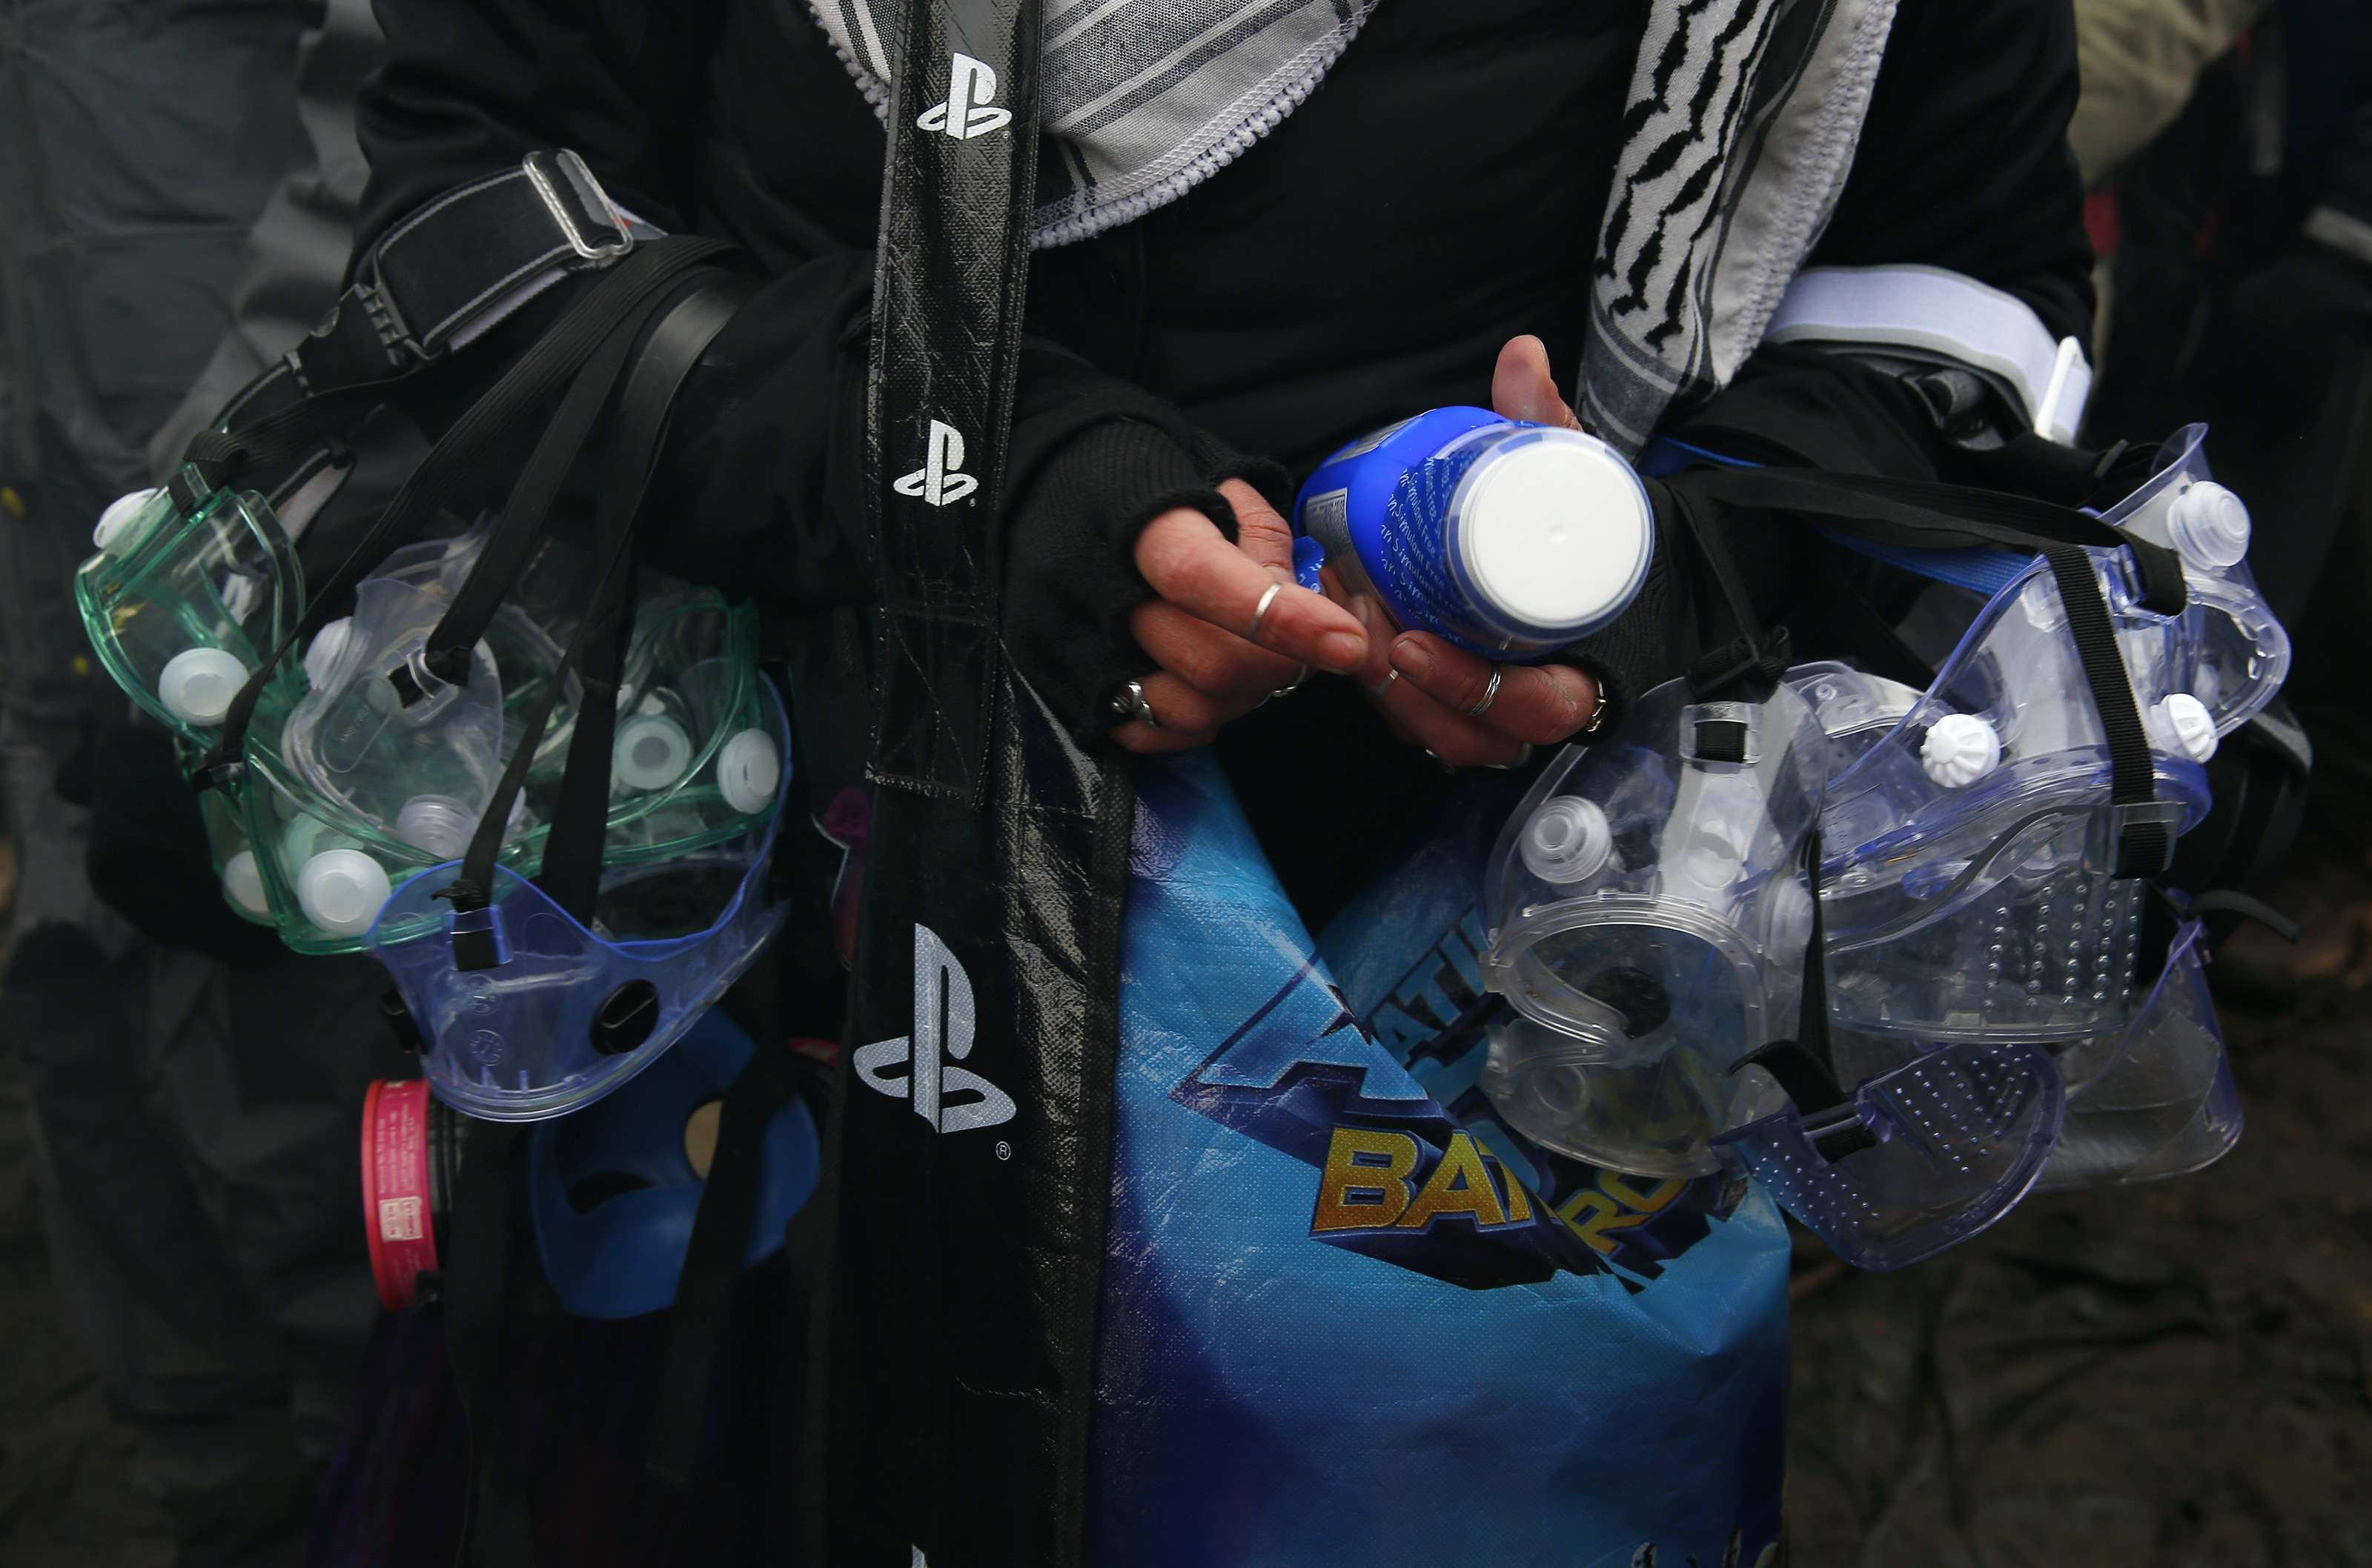 CANNON BALL, ND - NOVEMBER 24: A water protector loads up on goggles and milk of magnesia in anticipation of a confrontation with police as she prepares to cross the bridge to Turtle Island at Standing Rock on Nov. 24, 2016, during an ongoing dispute over the building of the Dakota Access Pipeline. (Photo by Jessica Rinaldi/The Boston Globe via Getty Images)